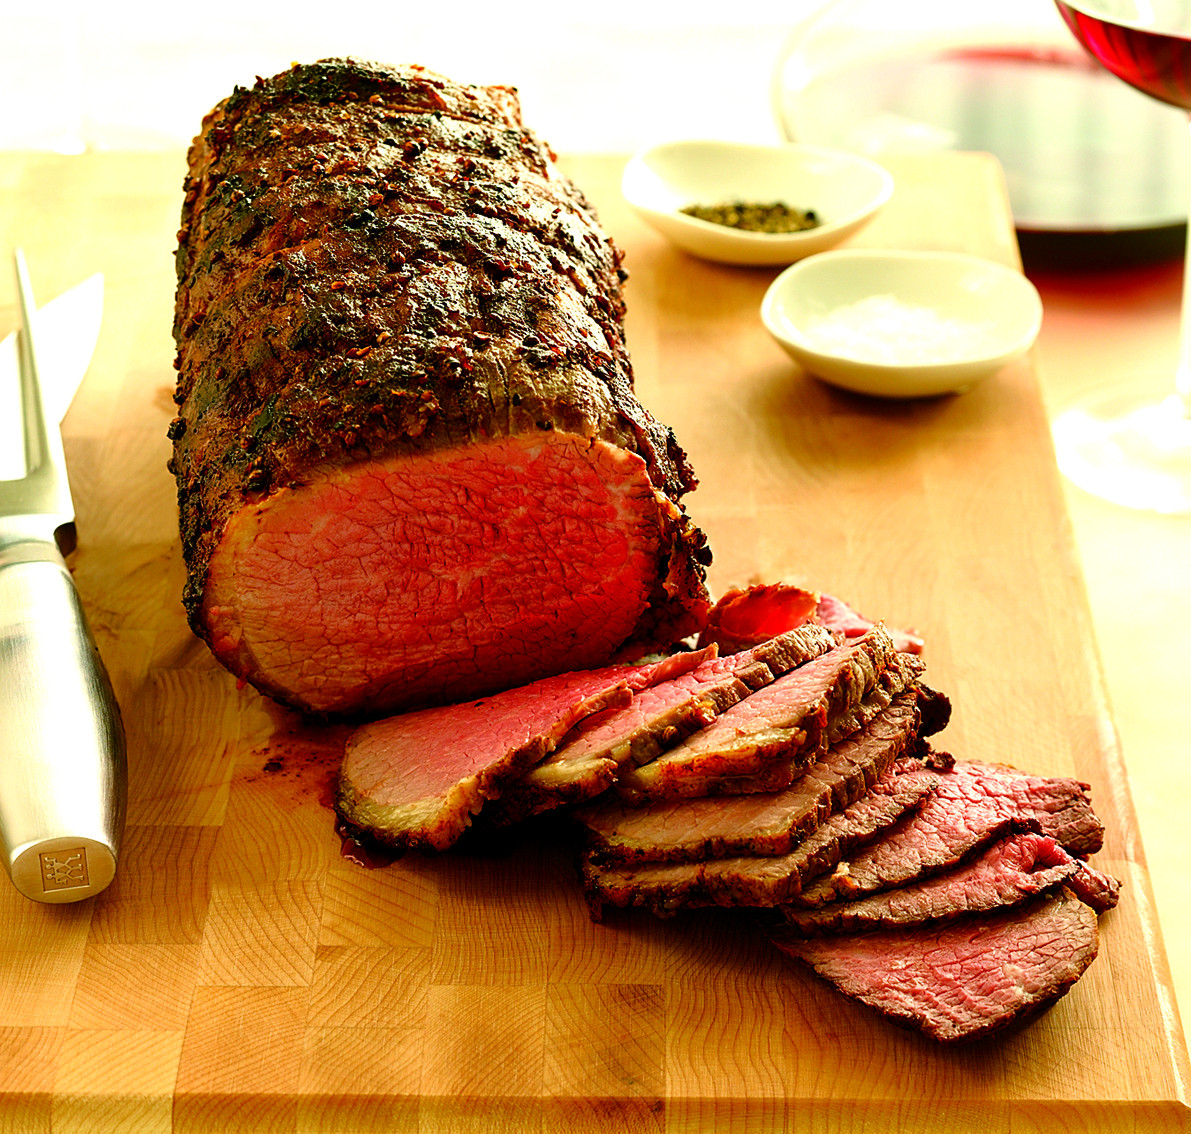 Coriander Dusted Roast Beef picture